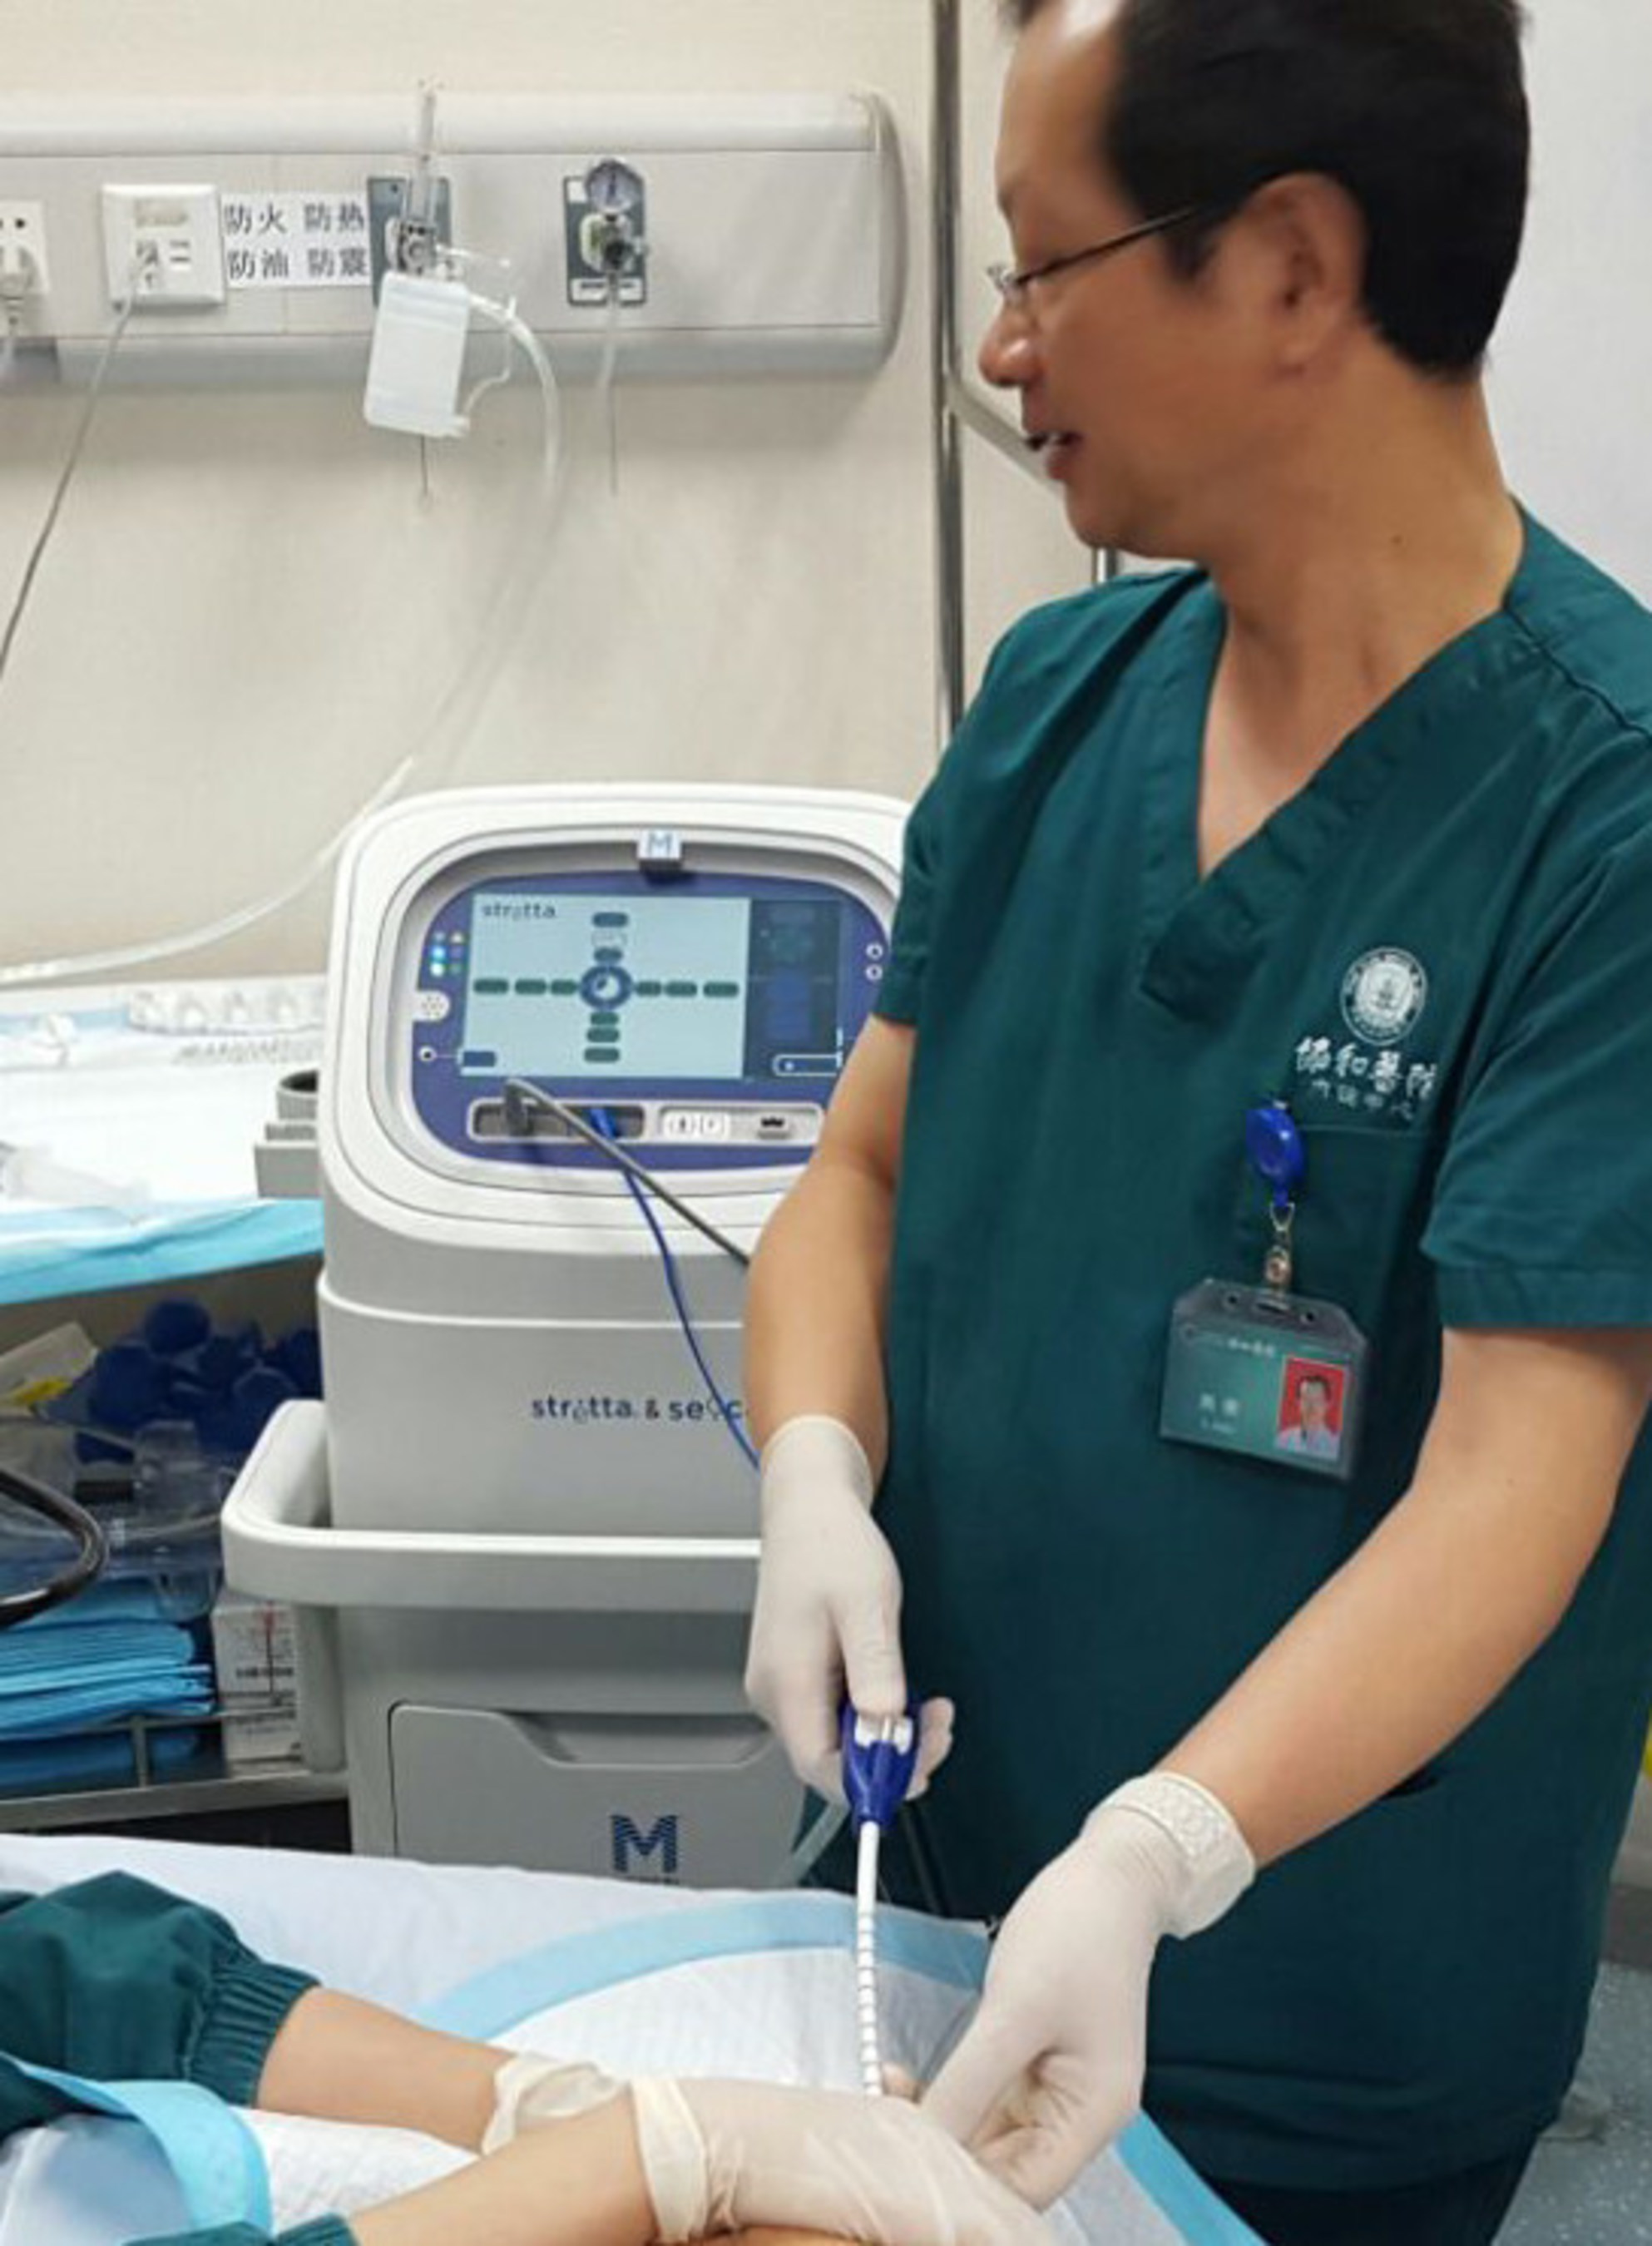 Live Stretta procedure performed and broadcast during the Chinese Congress of Digestive Endoscopy, by Professor Jun Liu, Director of Endoscopy at Wuhan Union Hospital